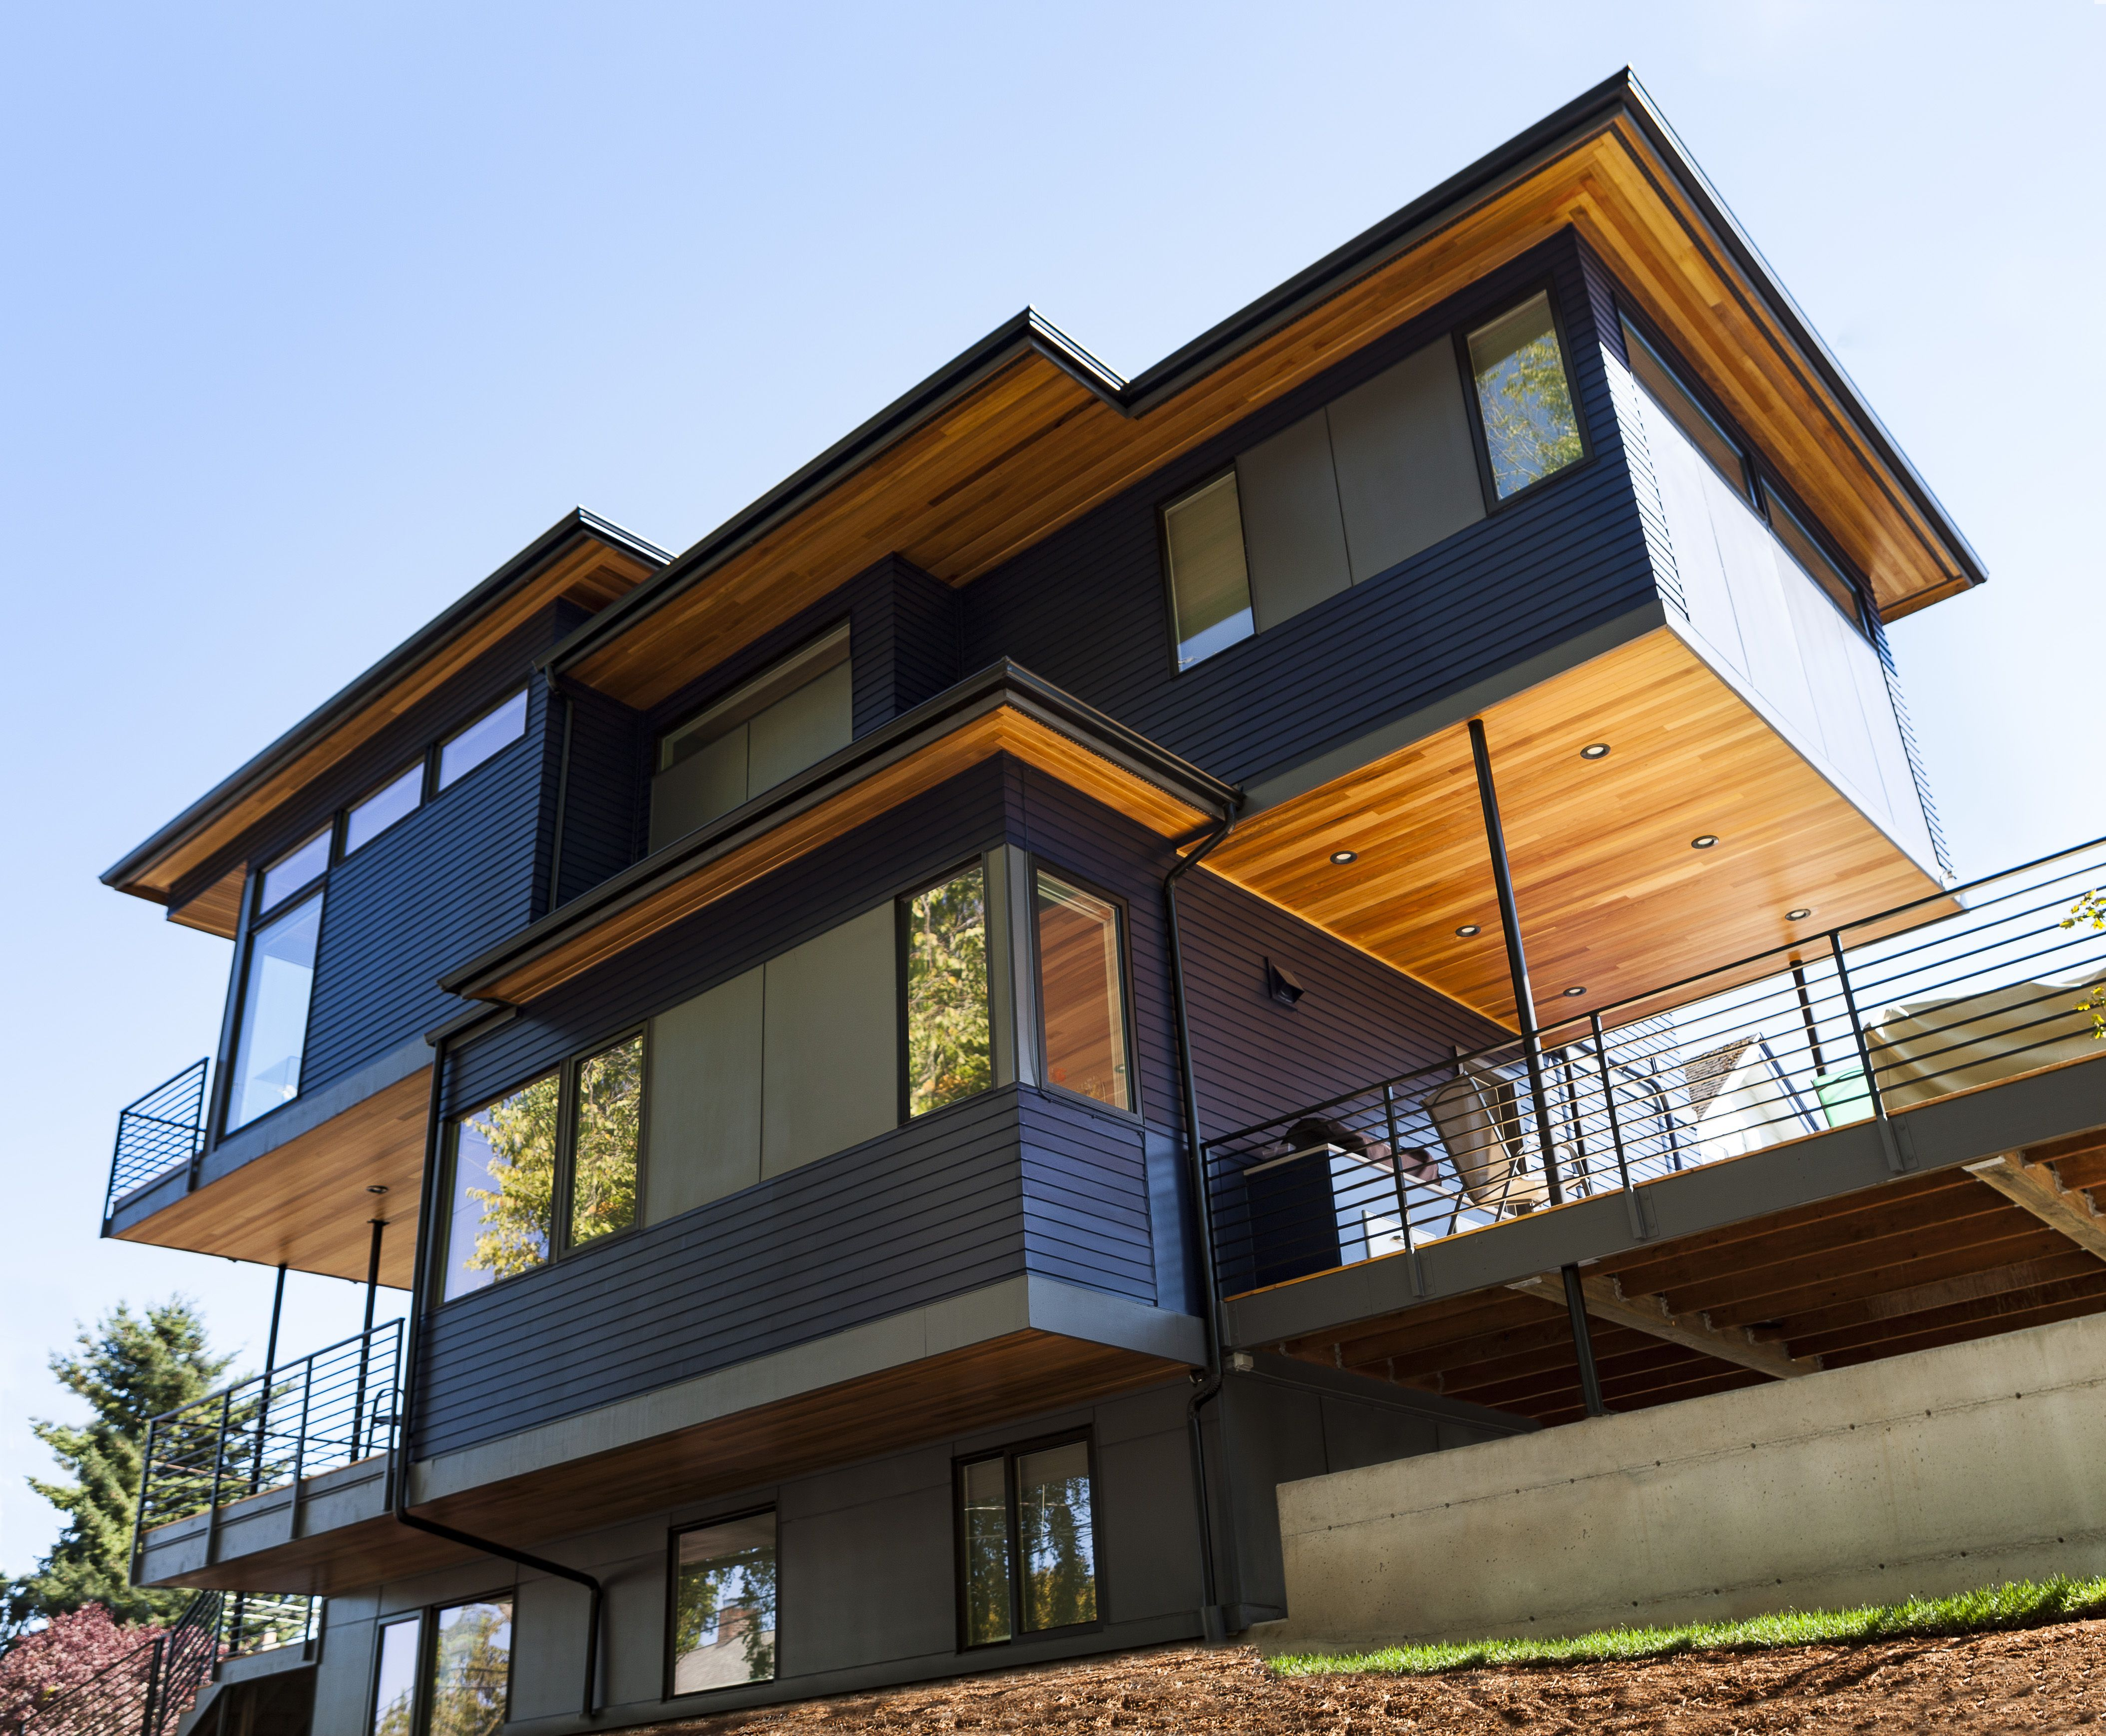 Modern Home In The Capitol Hill Neighborhood Of Seattle Washington Designed By First Lamp Architects First Lamp Arc Architect Shou Sugi Ban Design Build Firm